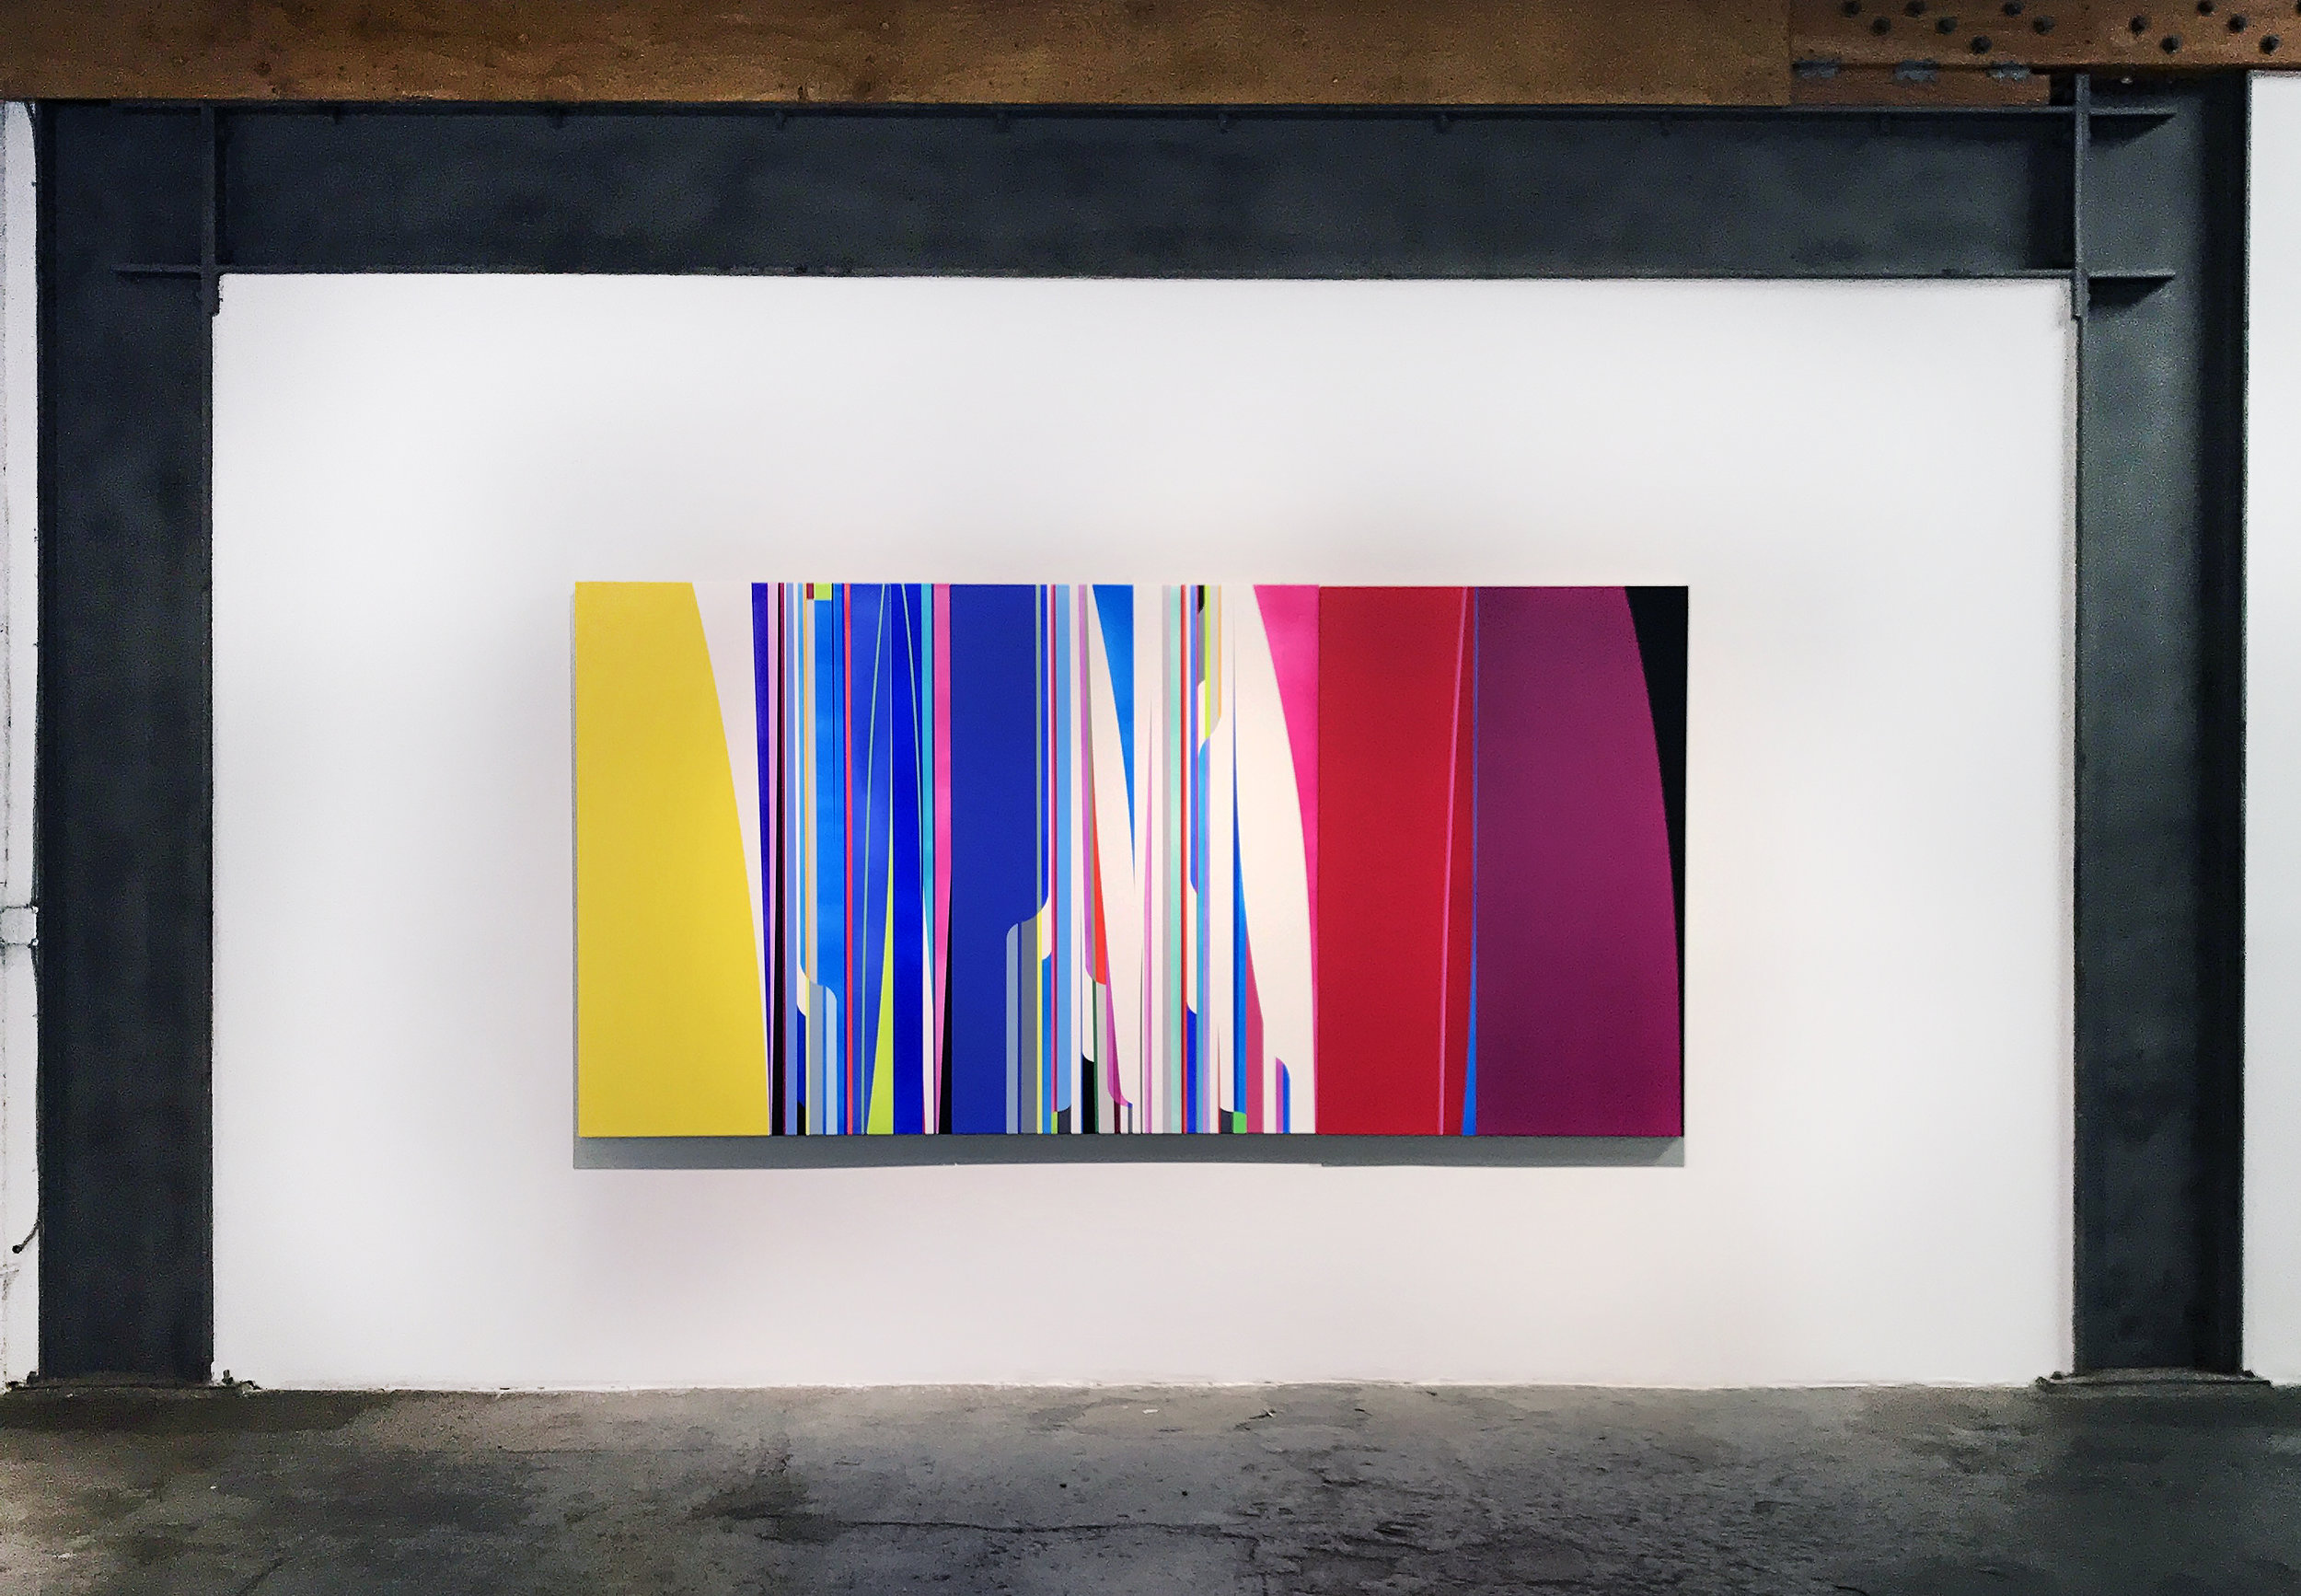 Dion Johnson, Time Traveller, 2017, acrylic on canvas, 60 x 120 inches